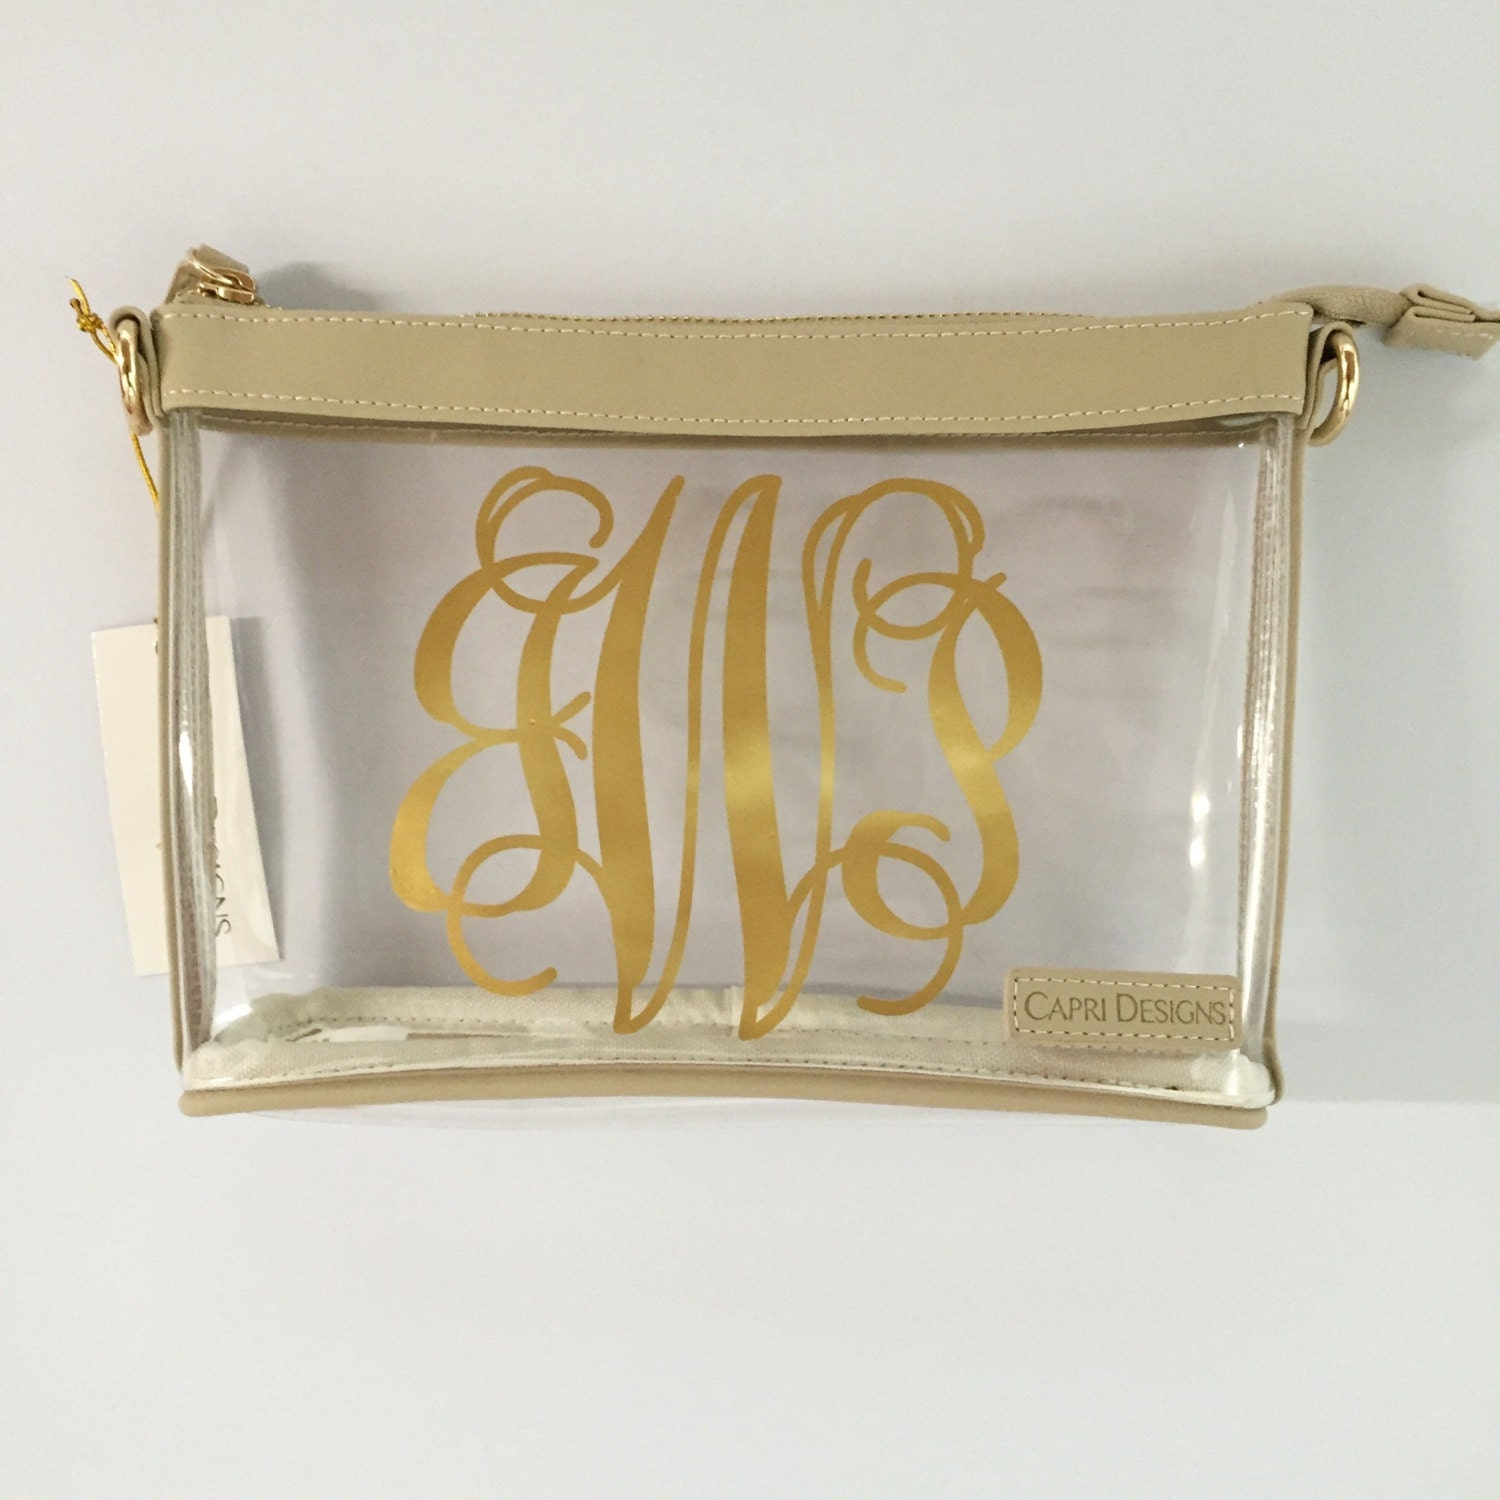 stadium approved clear cross body purse large